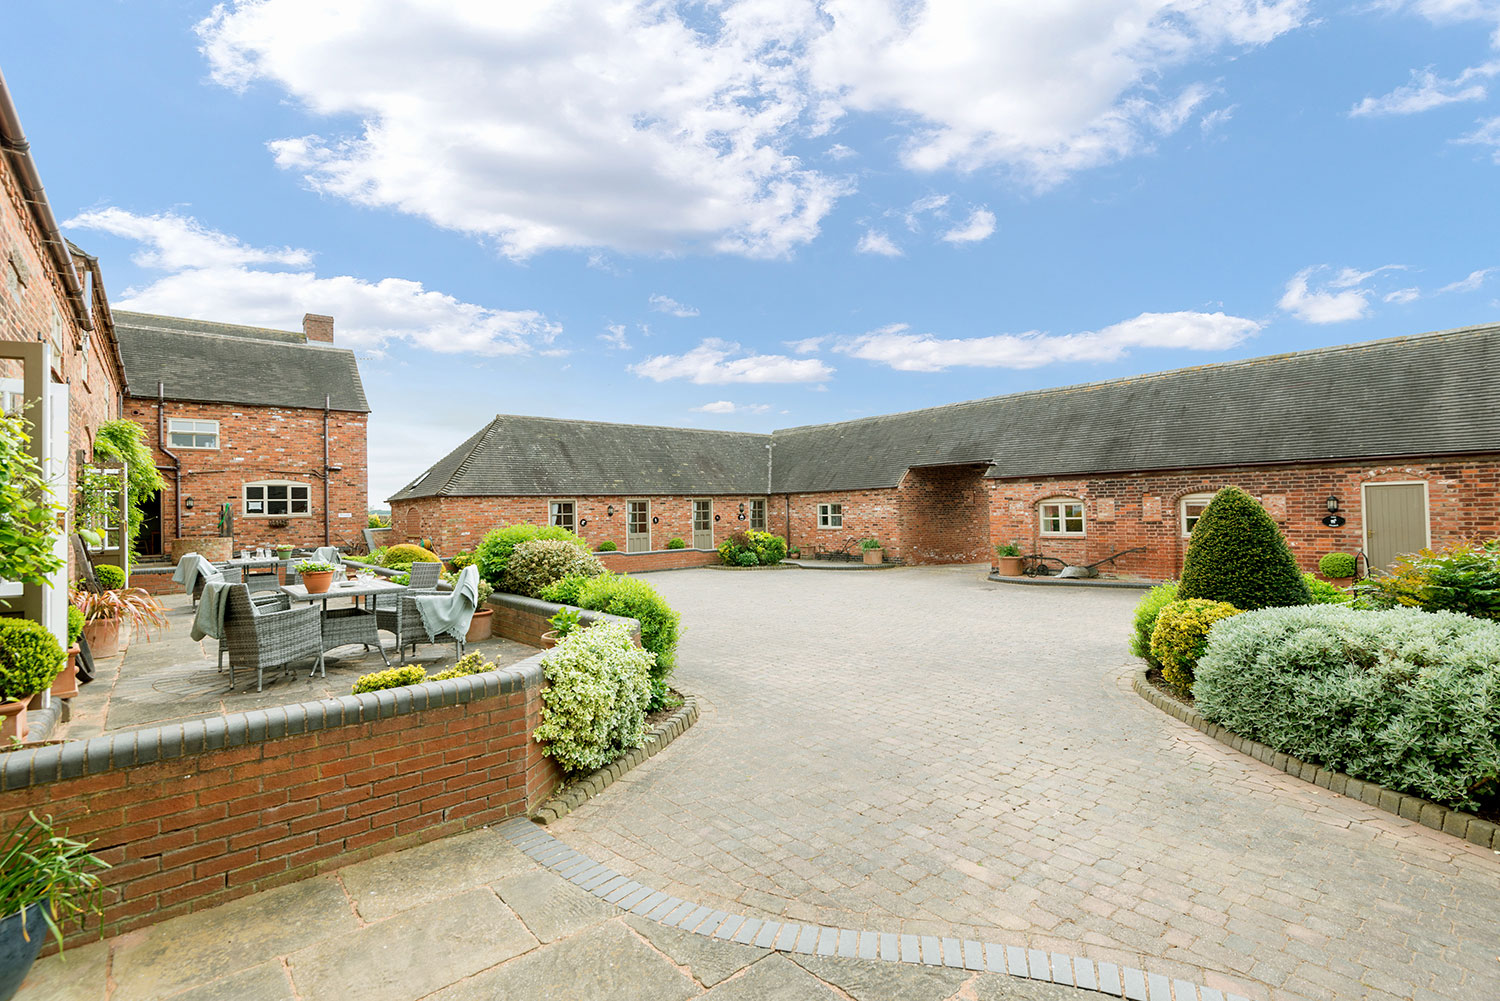 Group accommodation for up to 22 guests in central England | Upper Rectory Farm Cottages